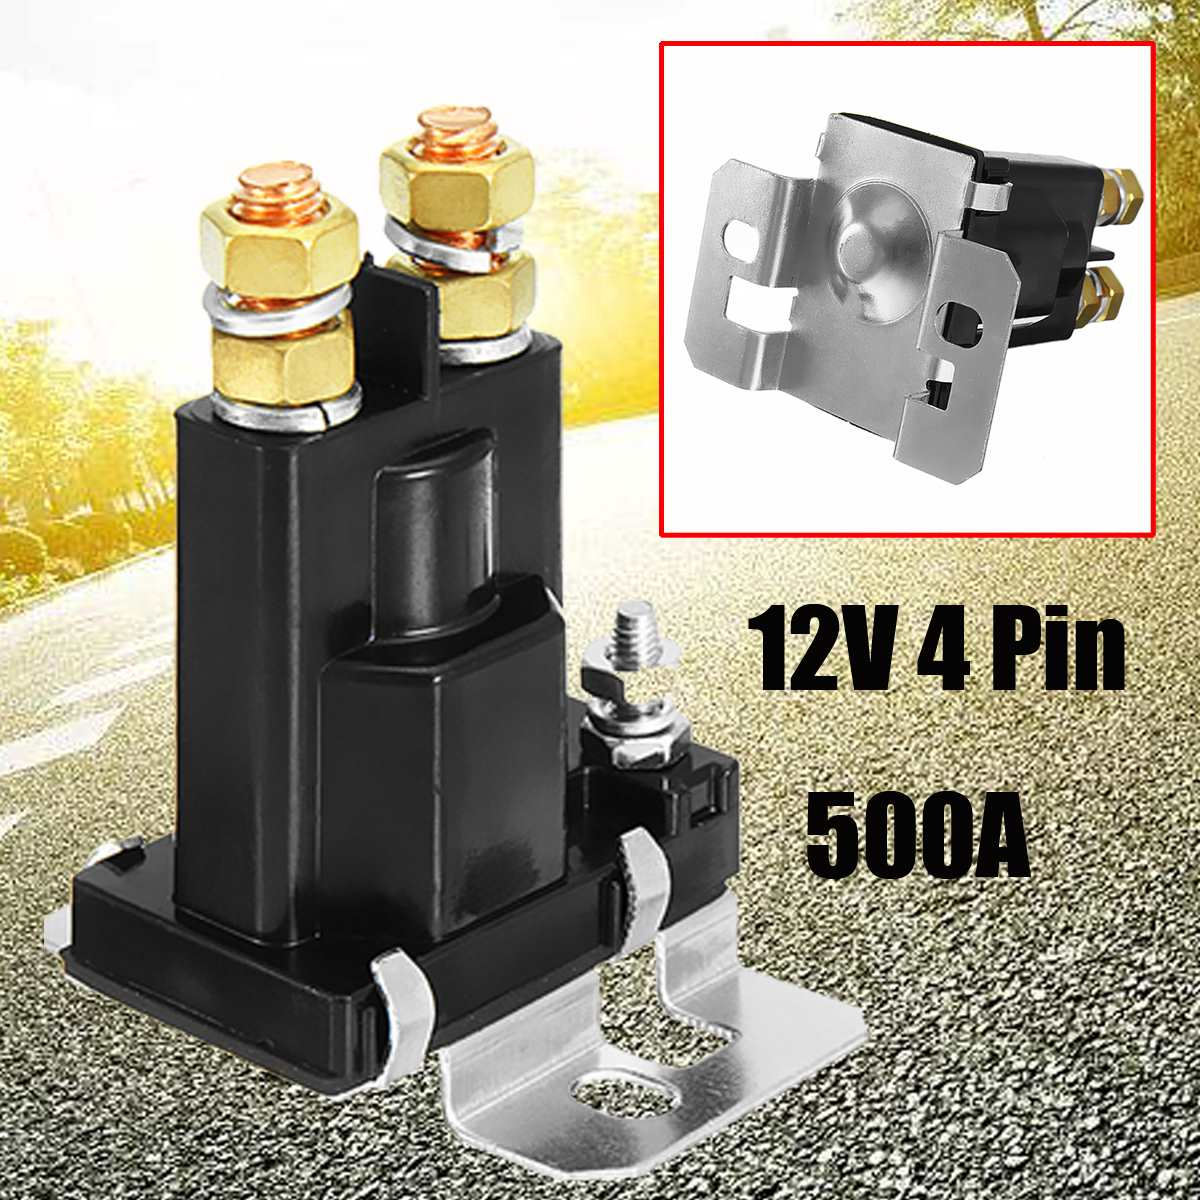 цена на New High Current 500A Amp Relay DC 12V 24V 4 Pin Continues Working Auto Power Switch On/Off Control For Car Motors Drives